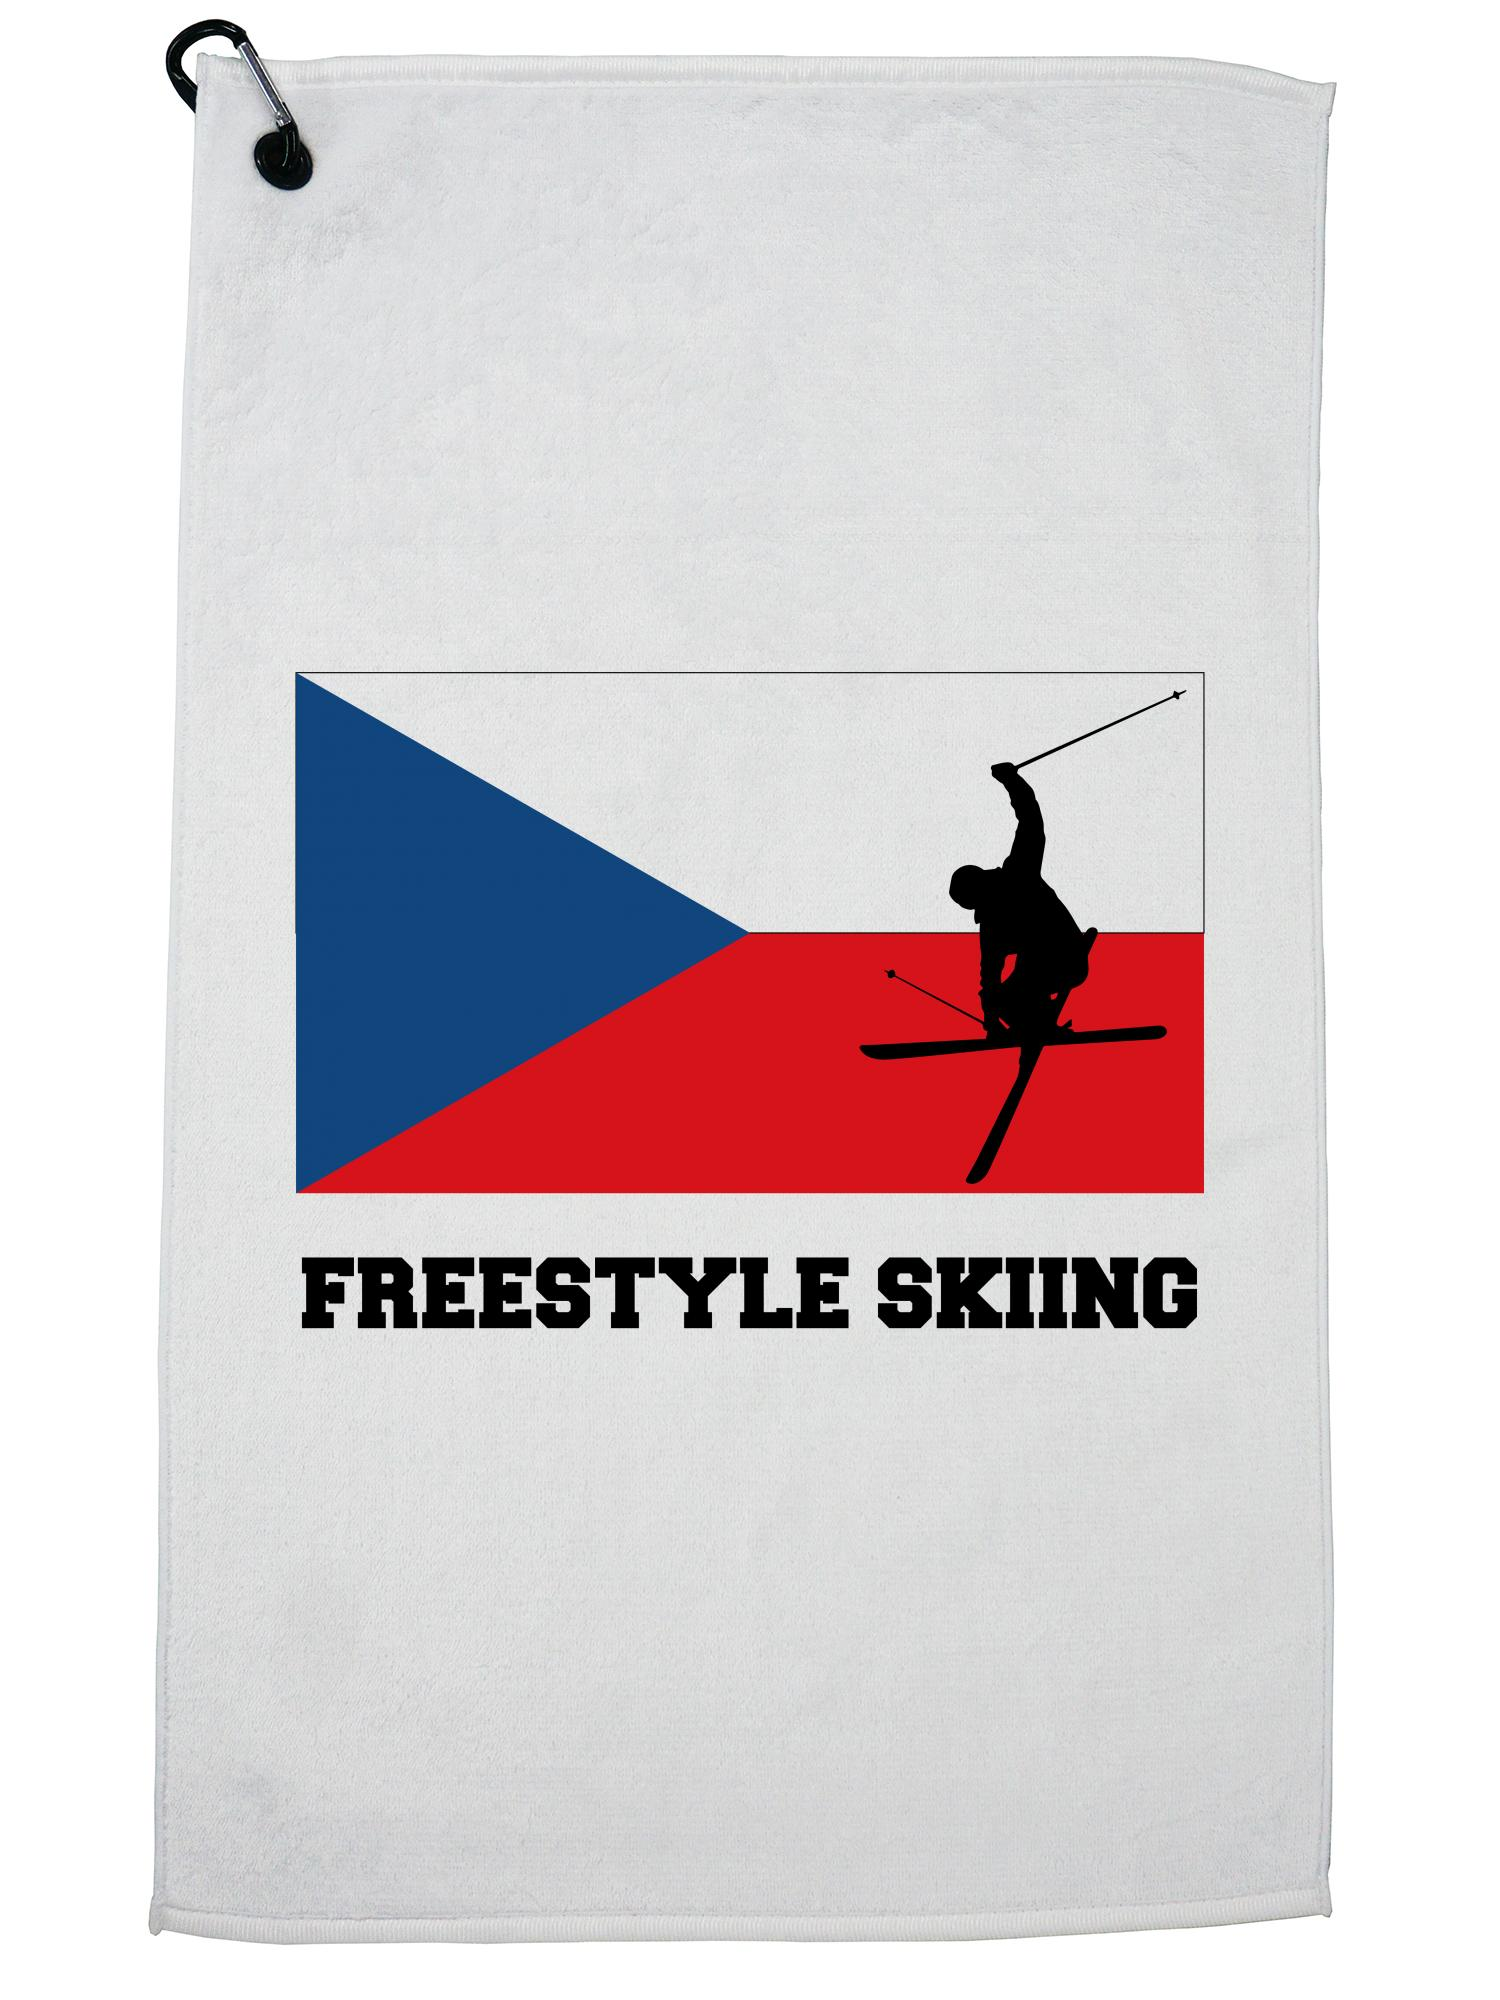 Czech Republic Olympic Freestyle Skiing Flag Silhouette Golf Towel with Carabiner Clip by Hollywood Thread